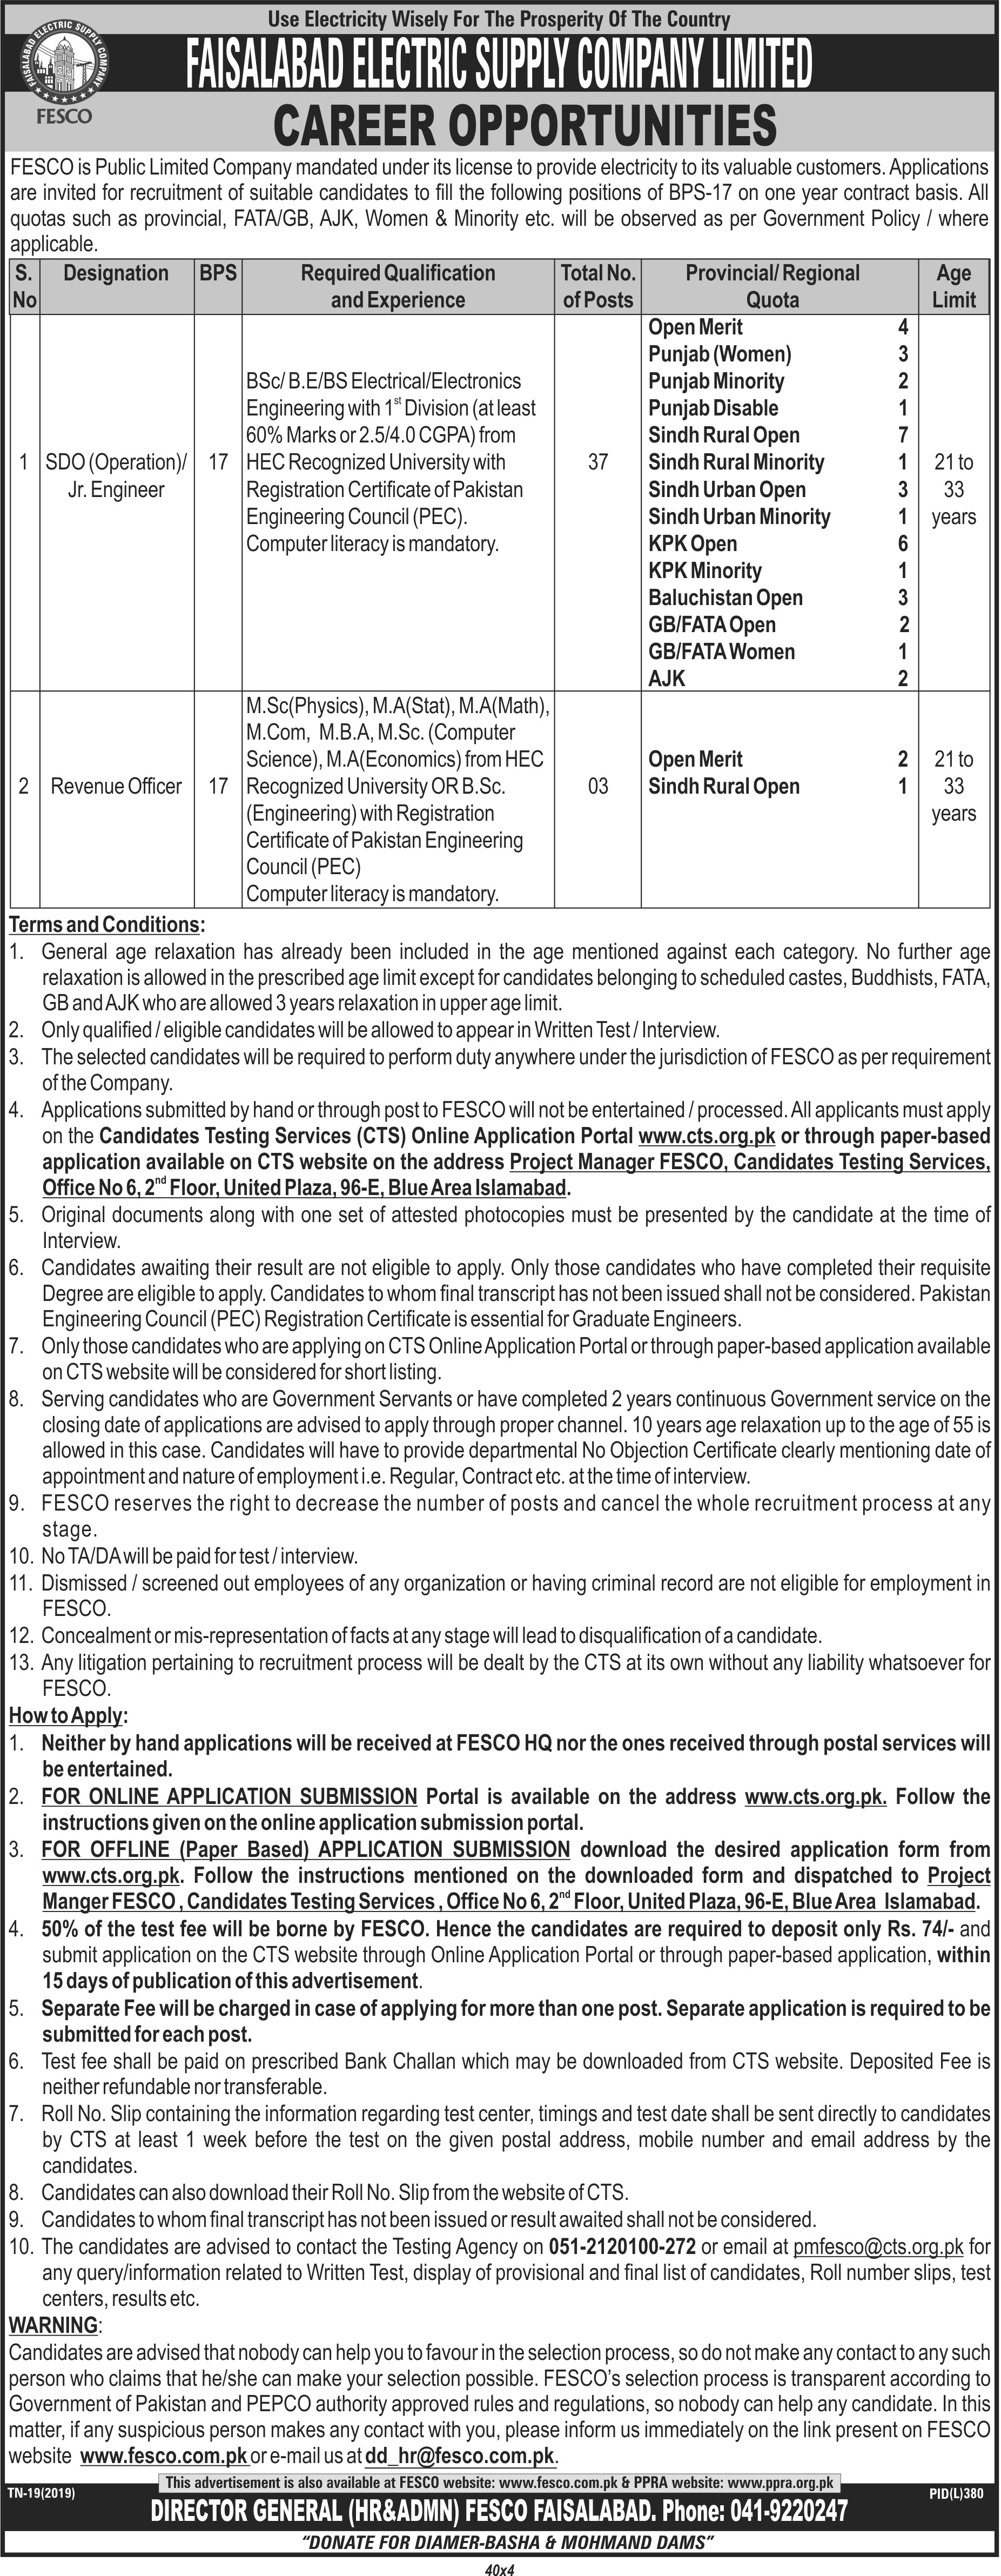 SDO Vacancies in FESCO